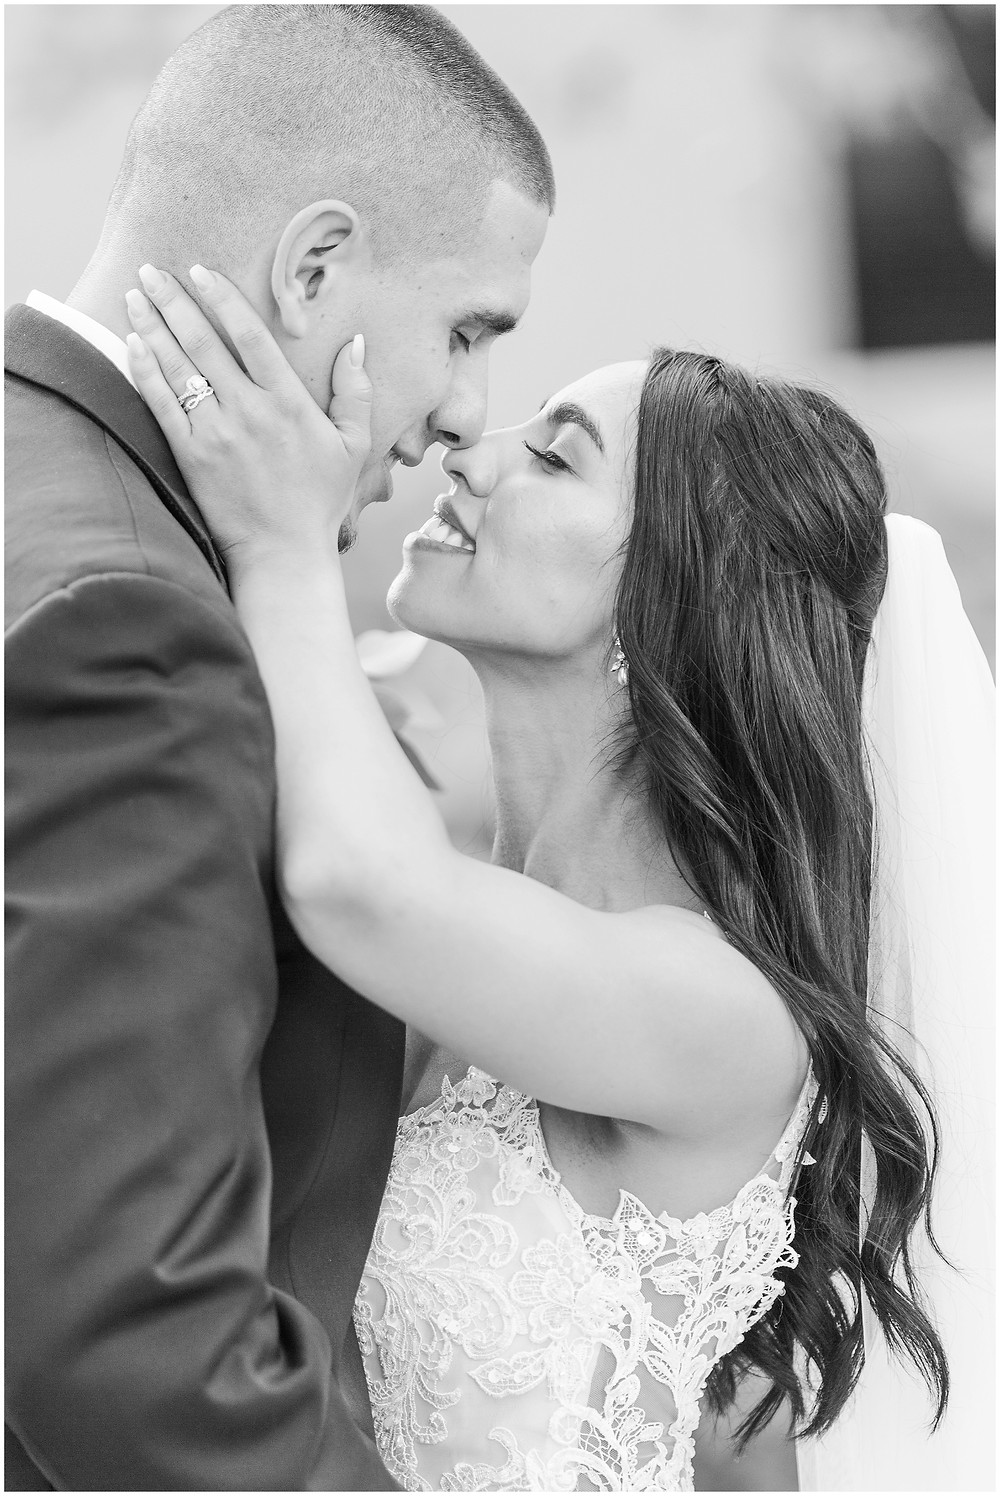 Black and white wedding photos. Bride and groom kissing after ceremony. Albuquerque wedding couple